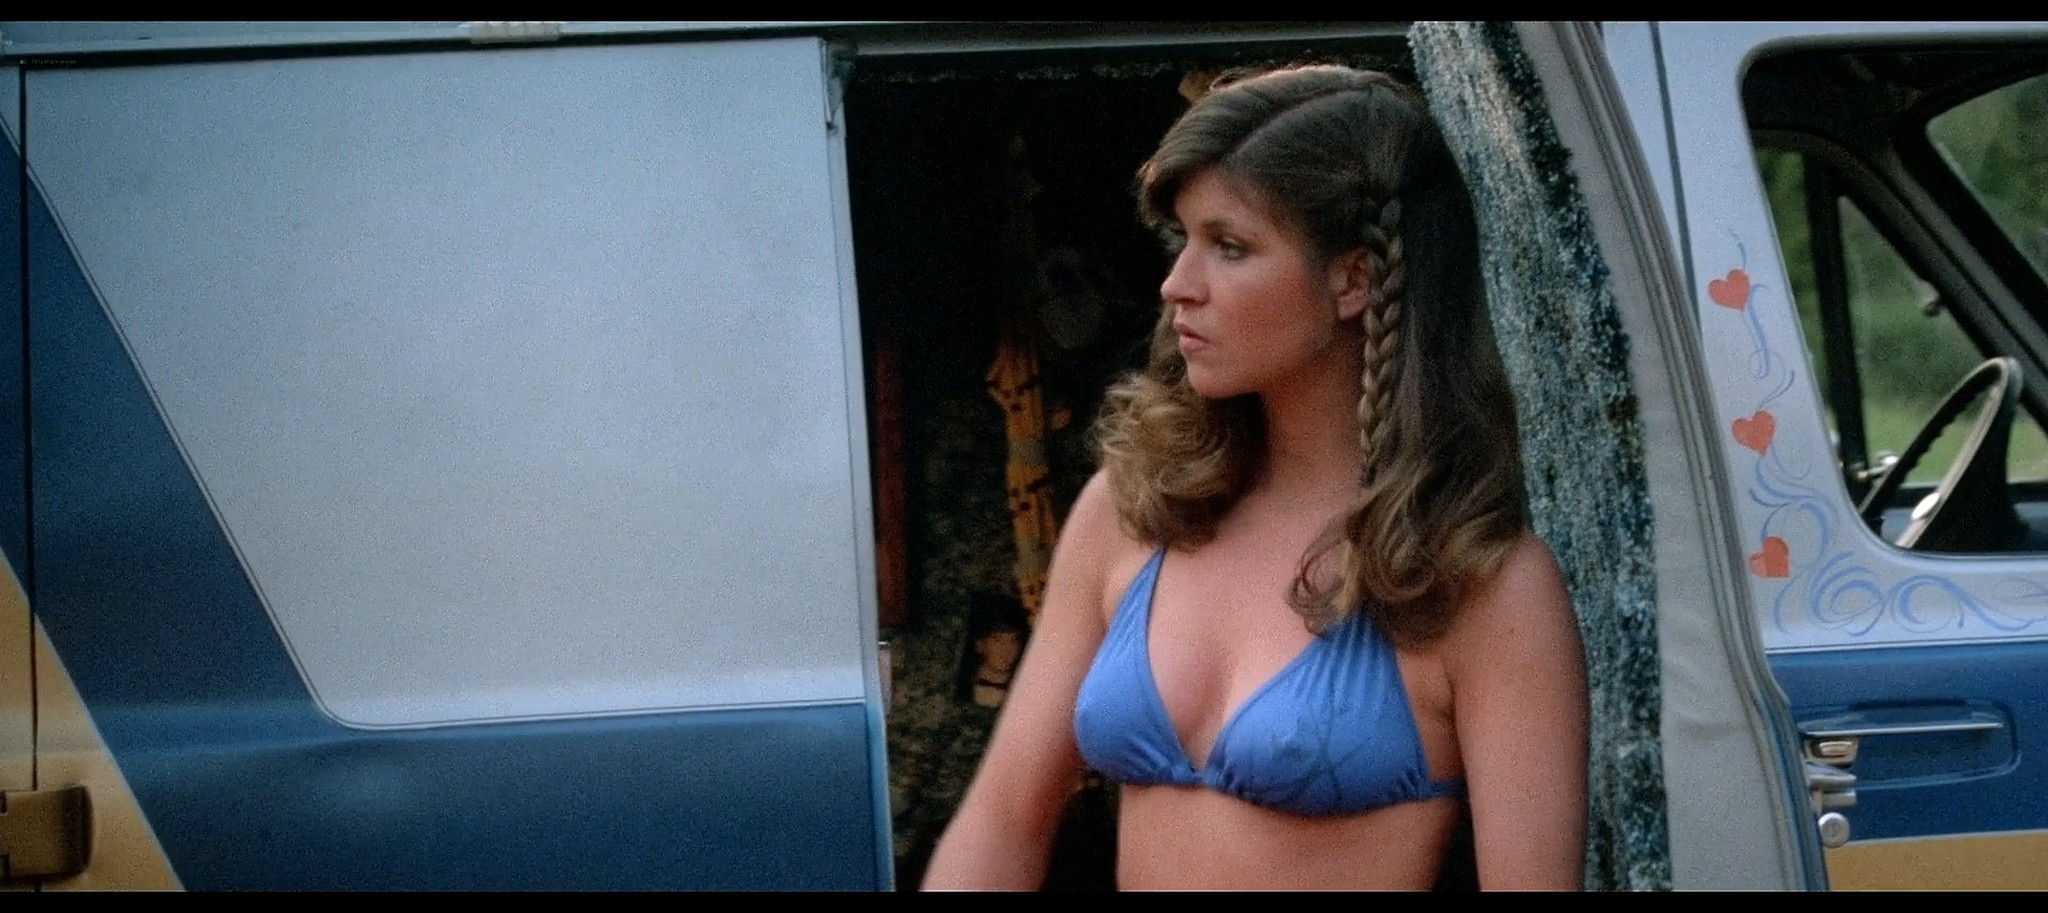 Tracie Savage nude in the shower Friday the 13th Part 3 1982 BluRay 6